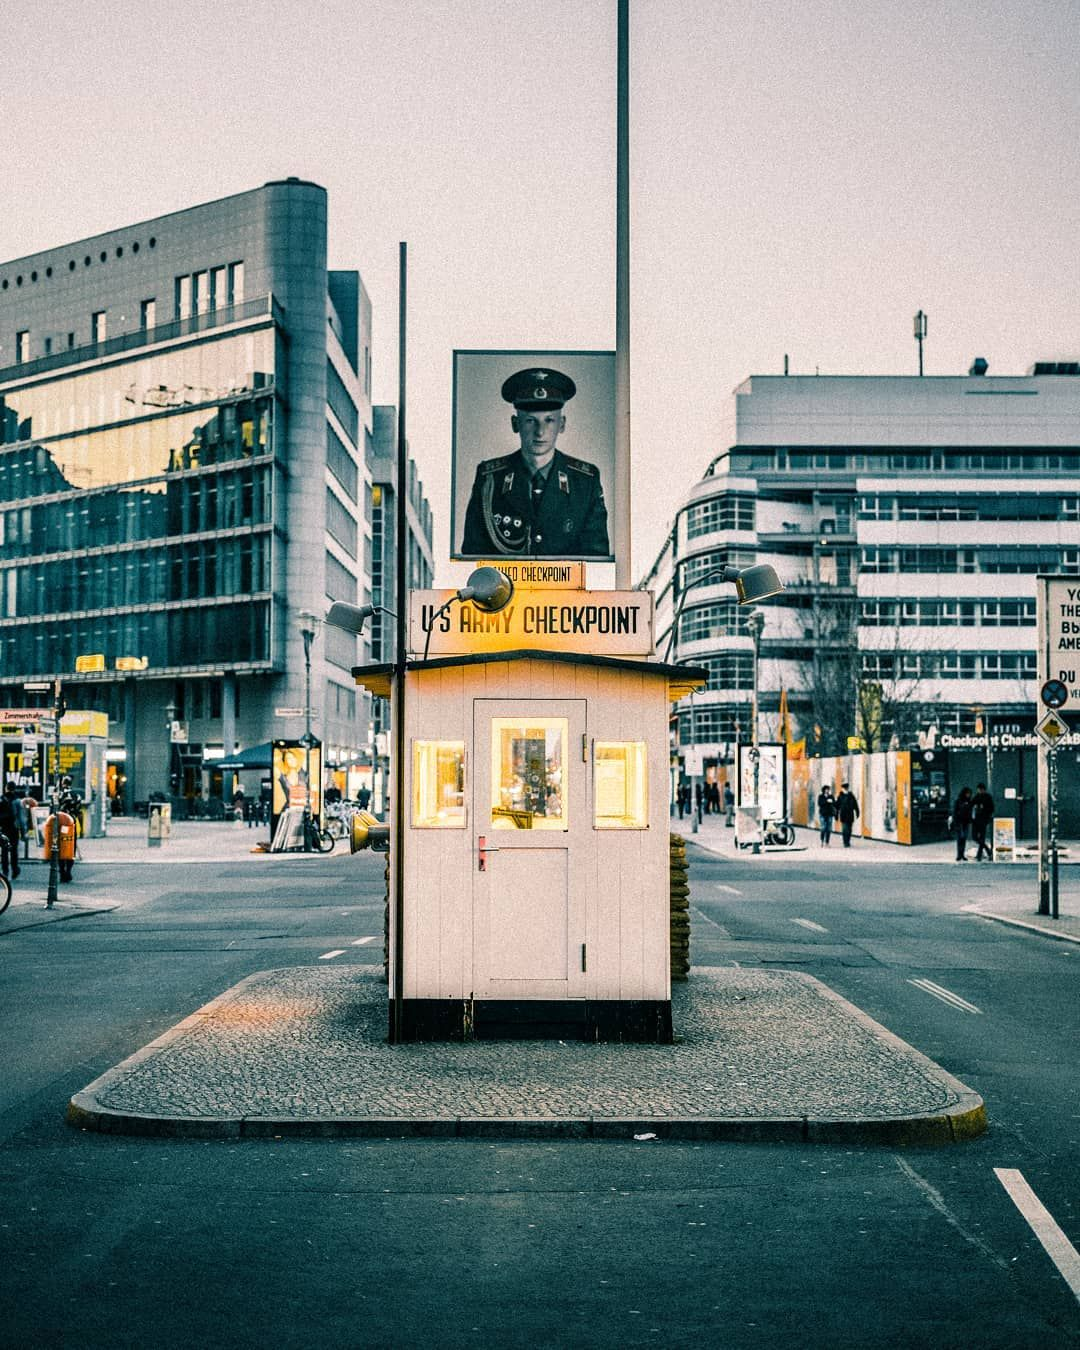 Checkpoint Charlie A Crossing Point Between East Berlin And West Berlin During The Cold War It Was Given Its Name By The We East Berlin West Berlin Cold War